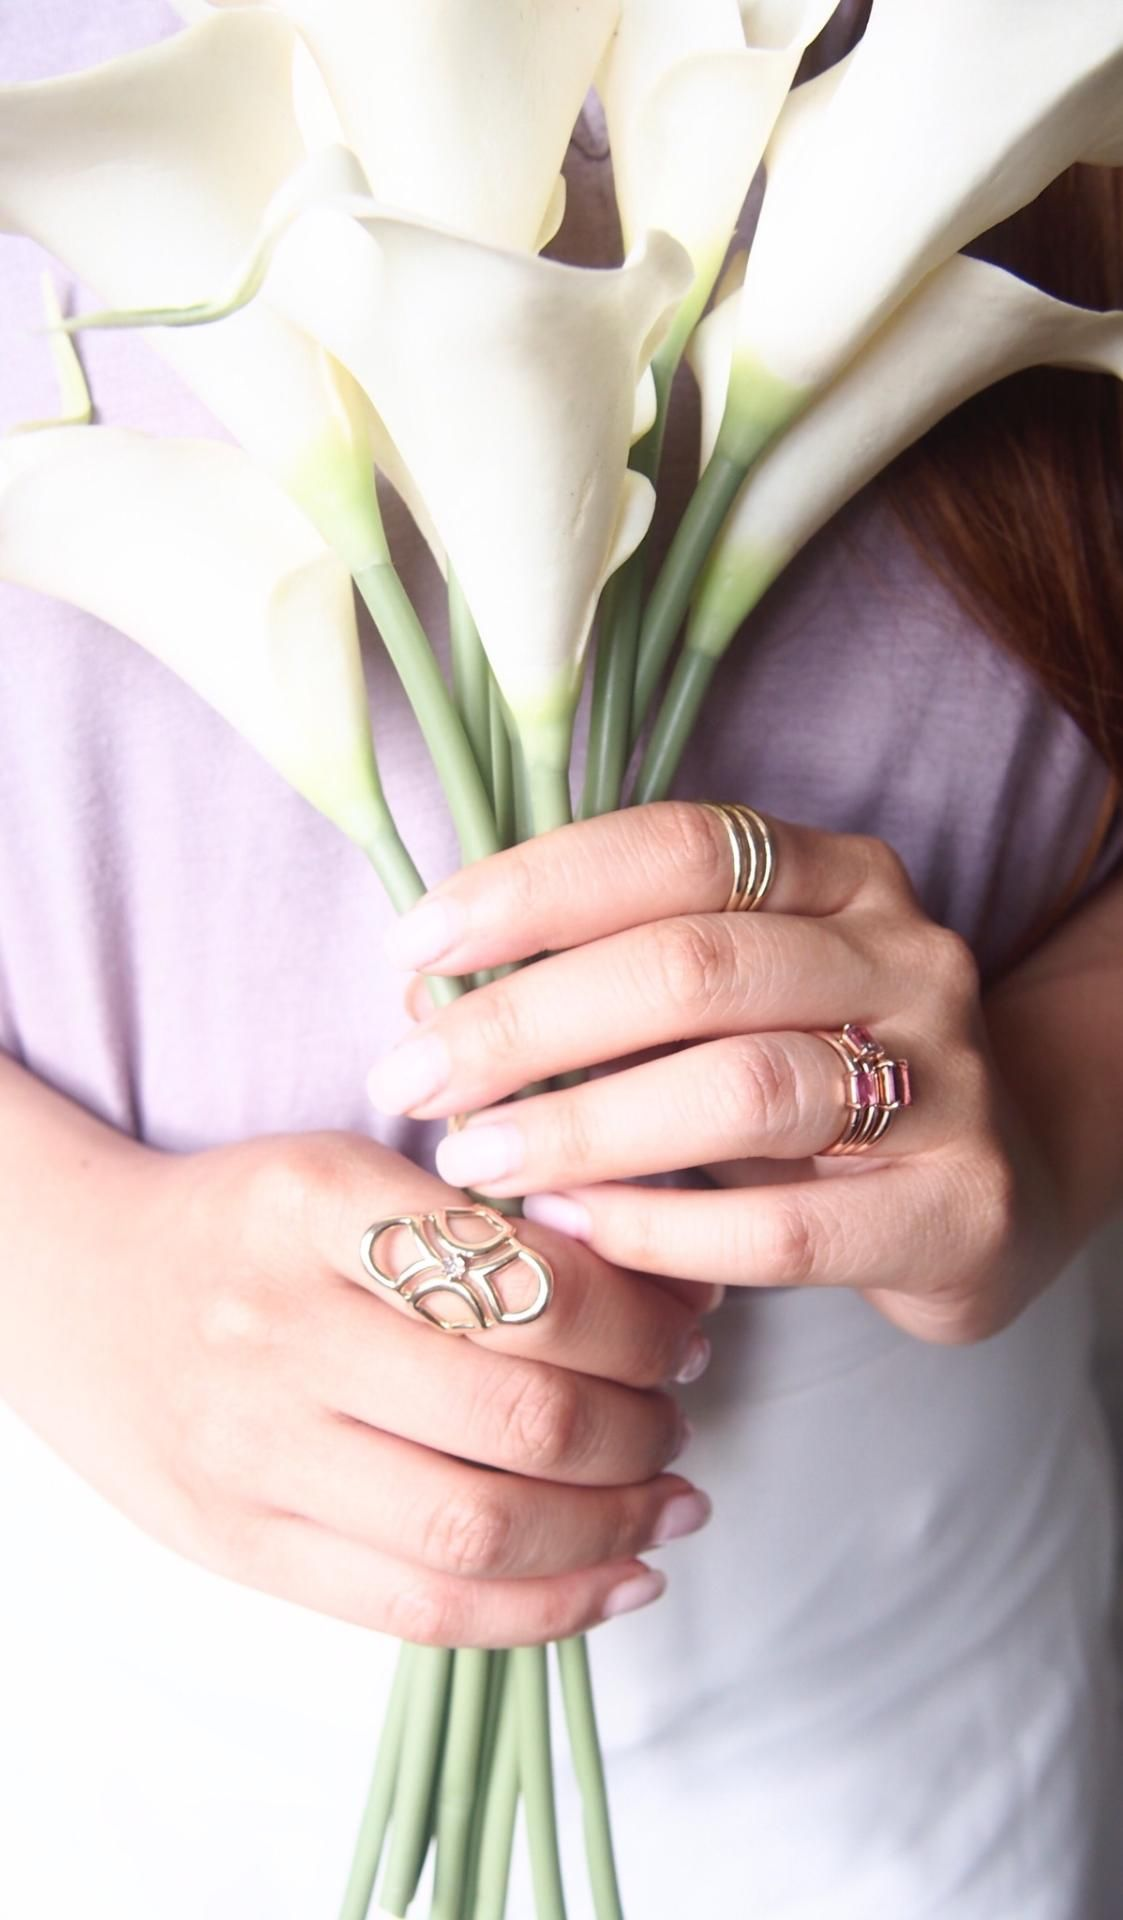 Wearing multiple rings is the perfect way to accessorize